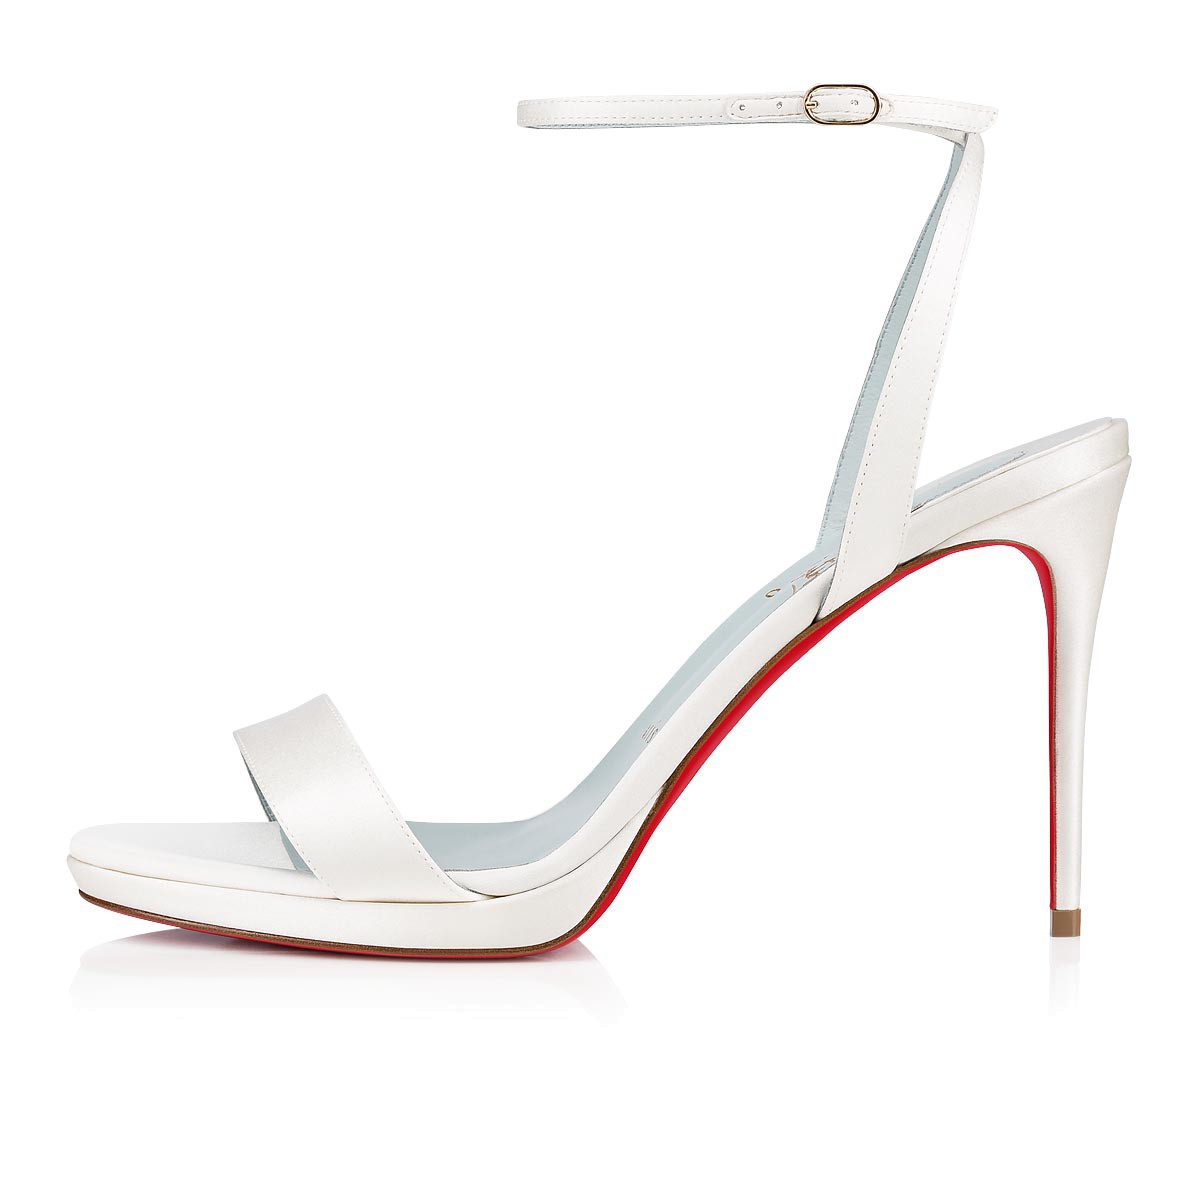 Shoes - Loubi Queen Crepe Satin - Christian Louboutin